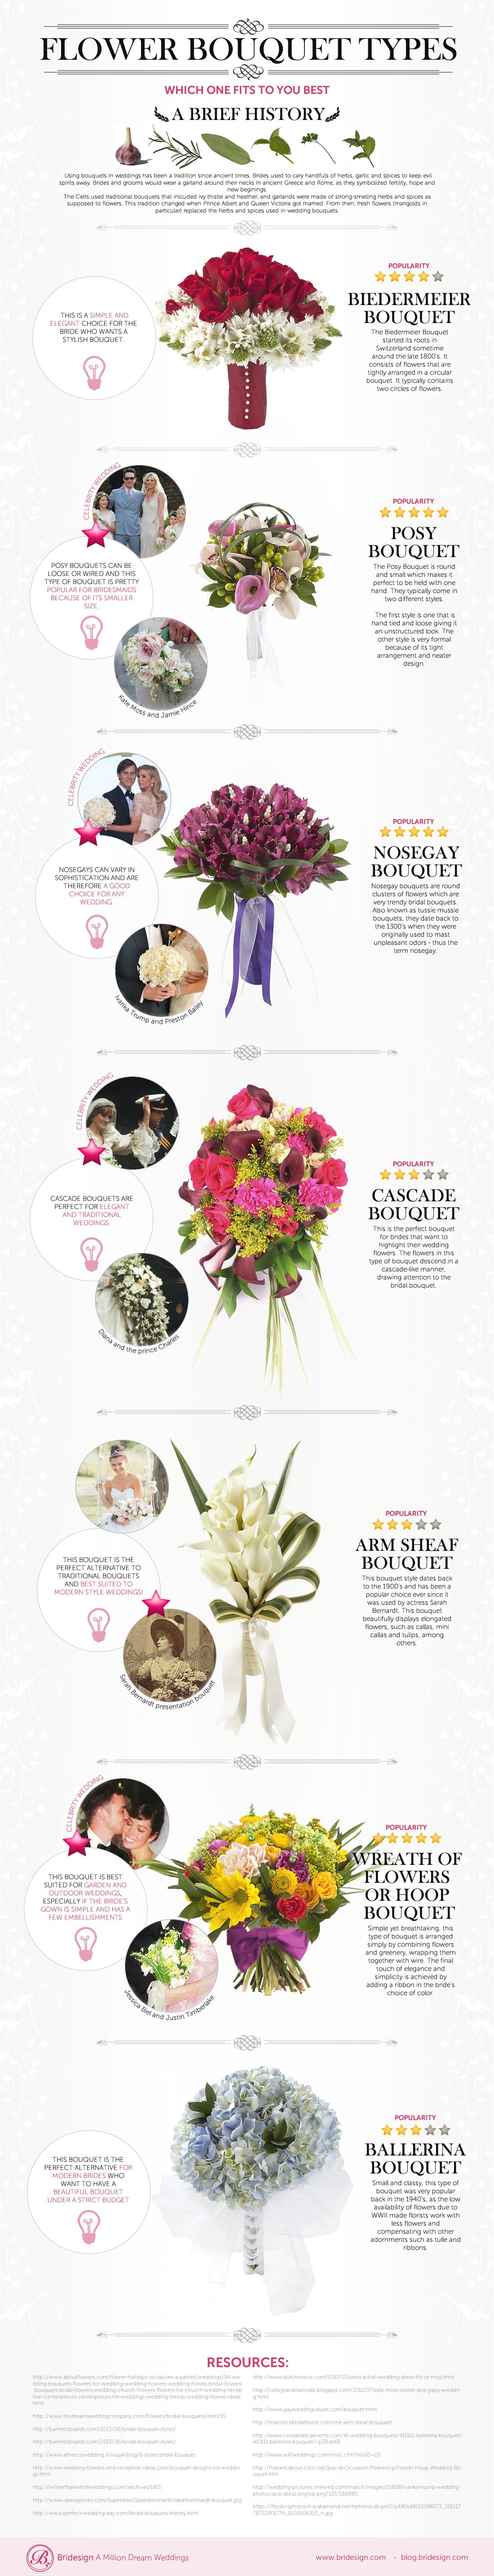 A Brief history Of Flower Bouquet Types [Infographic